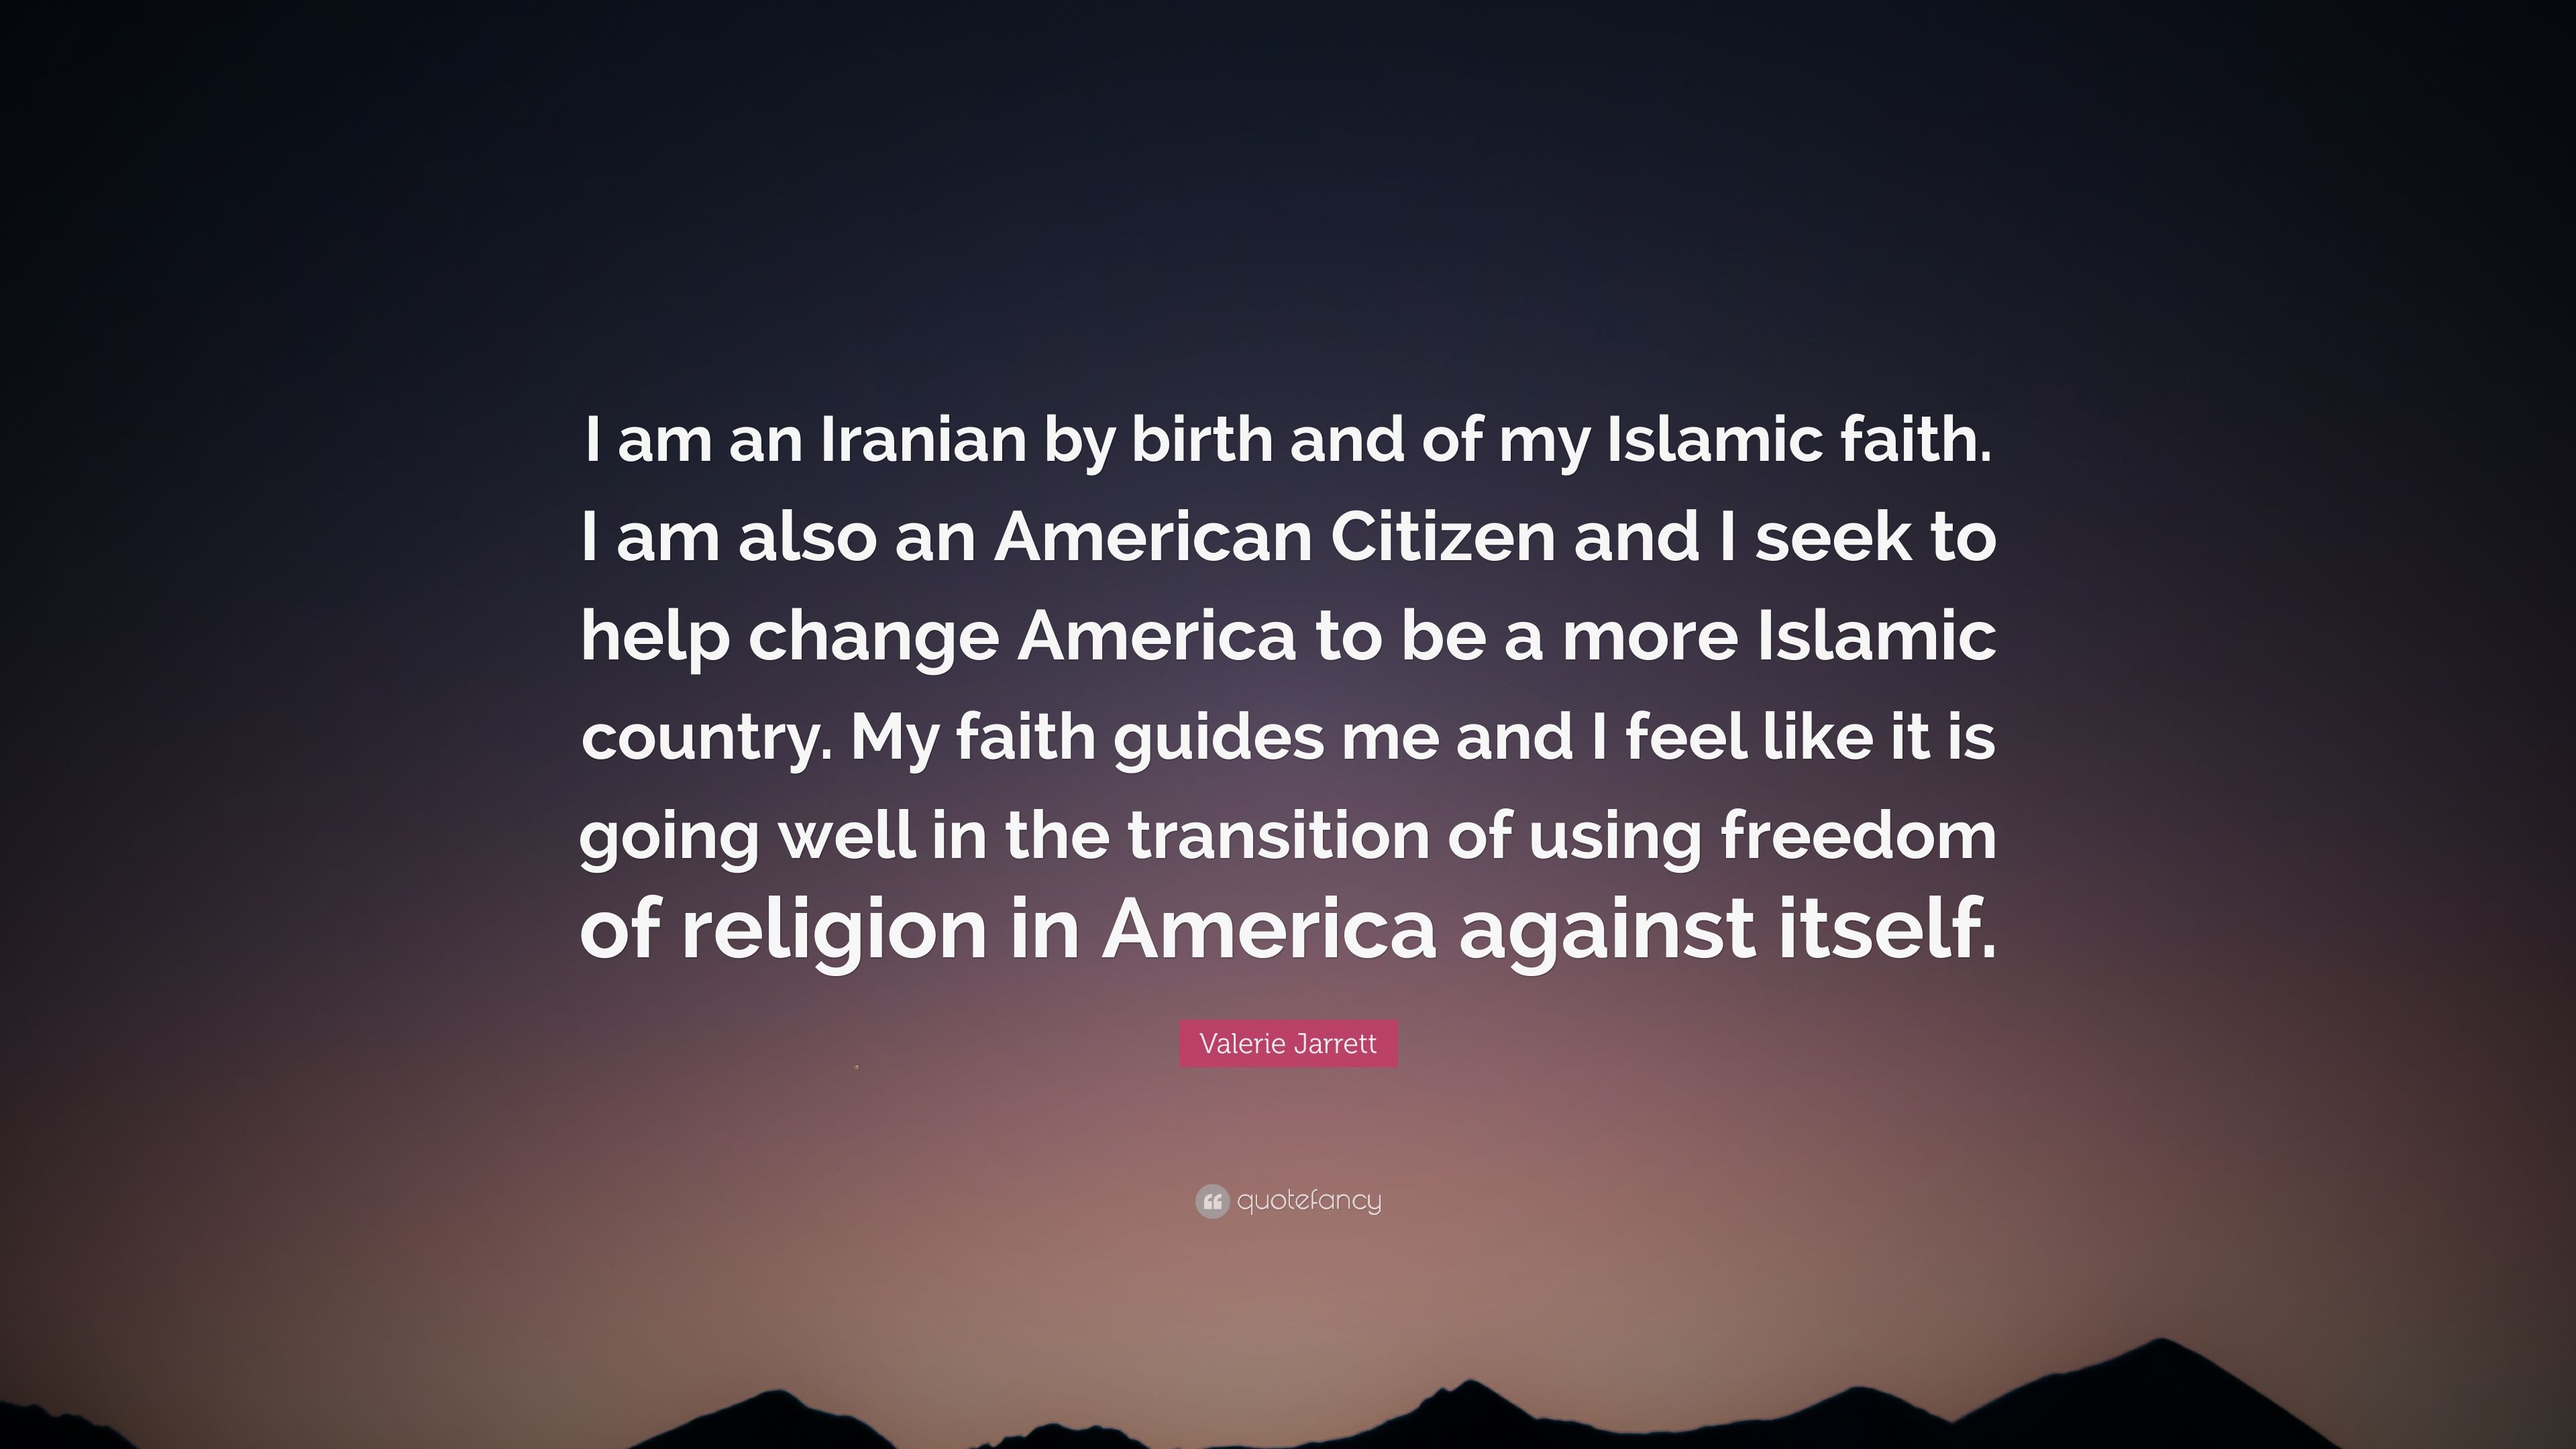 Islamic Quotes And Wallpapers Valerie Jarrett Quote I Am An Iranian By Birth And Of My